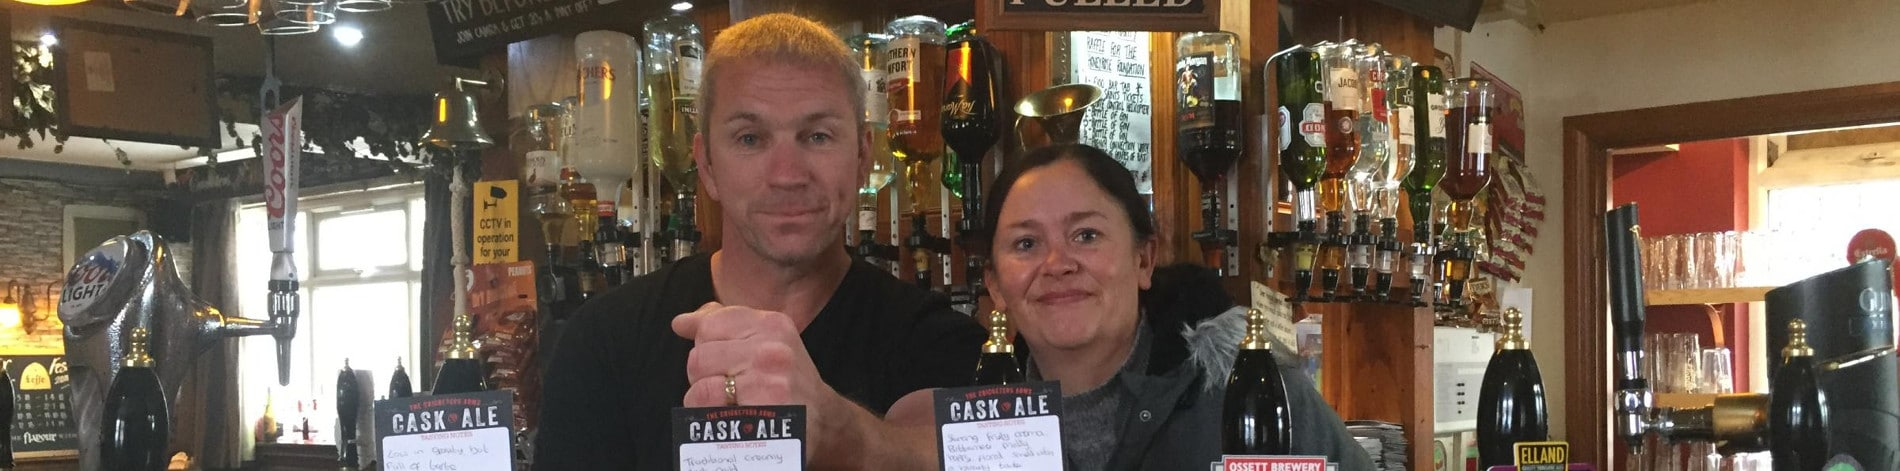 CAMRA Pub of the Year 2018